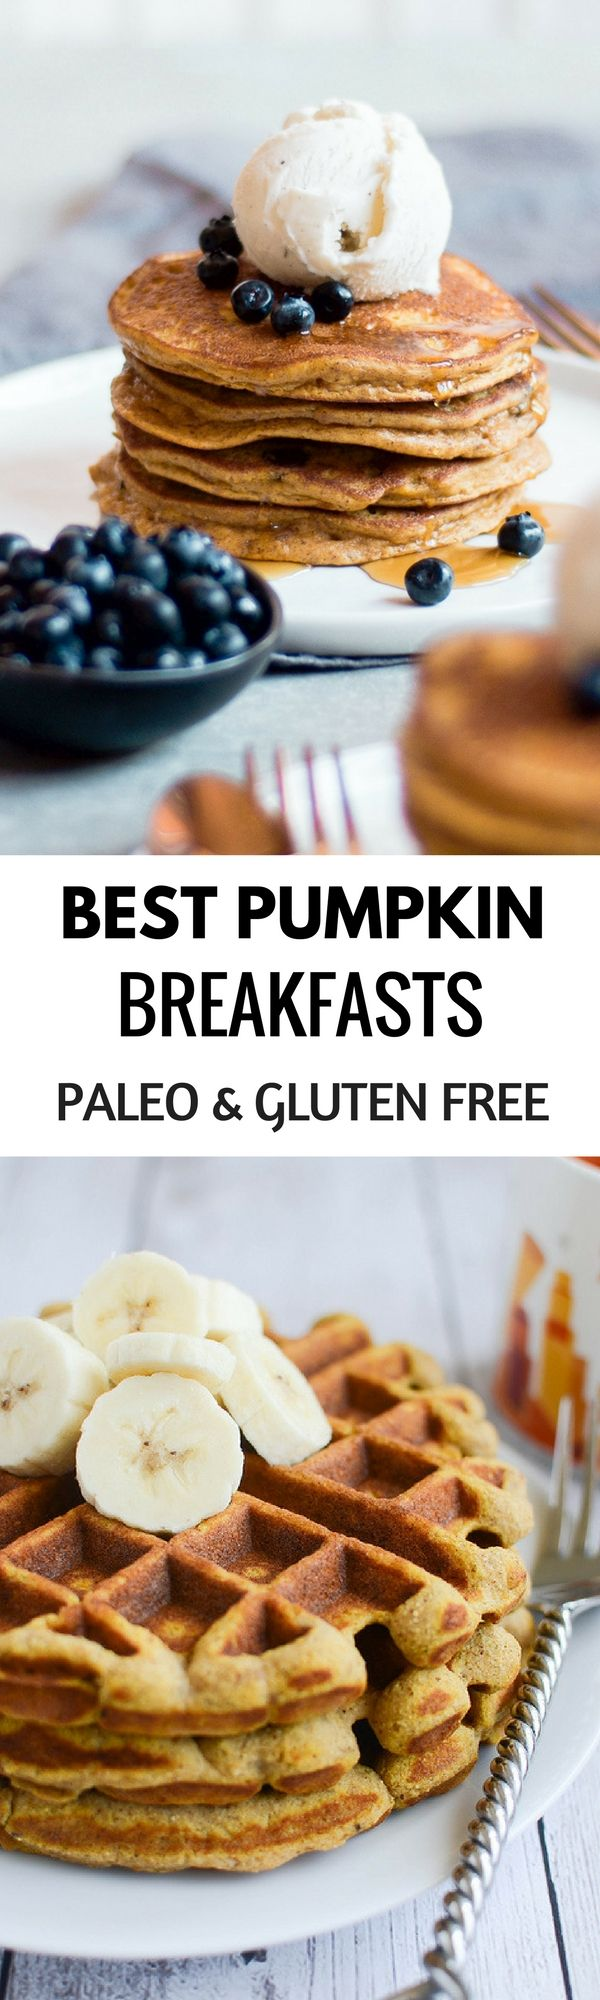 The best Paleo Pumpkin breakfast recipes! Delicious Gluten free and Paleo breakfast ideas for easy pumpkin pancakes, waffles, muffins, and more! Healthy and inspiring food.